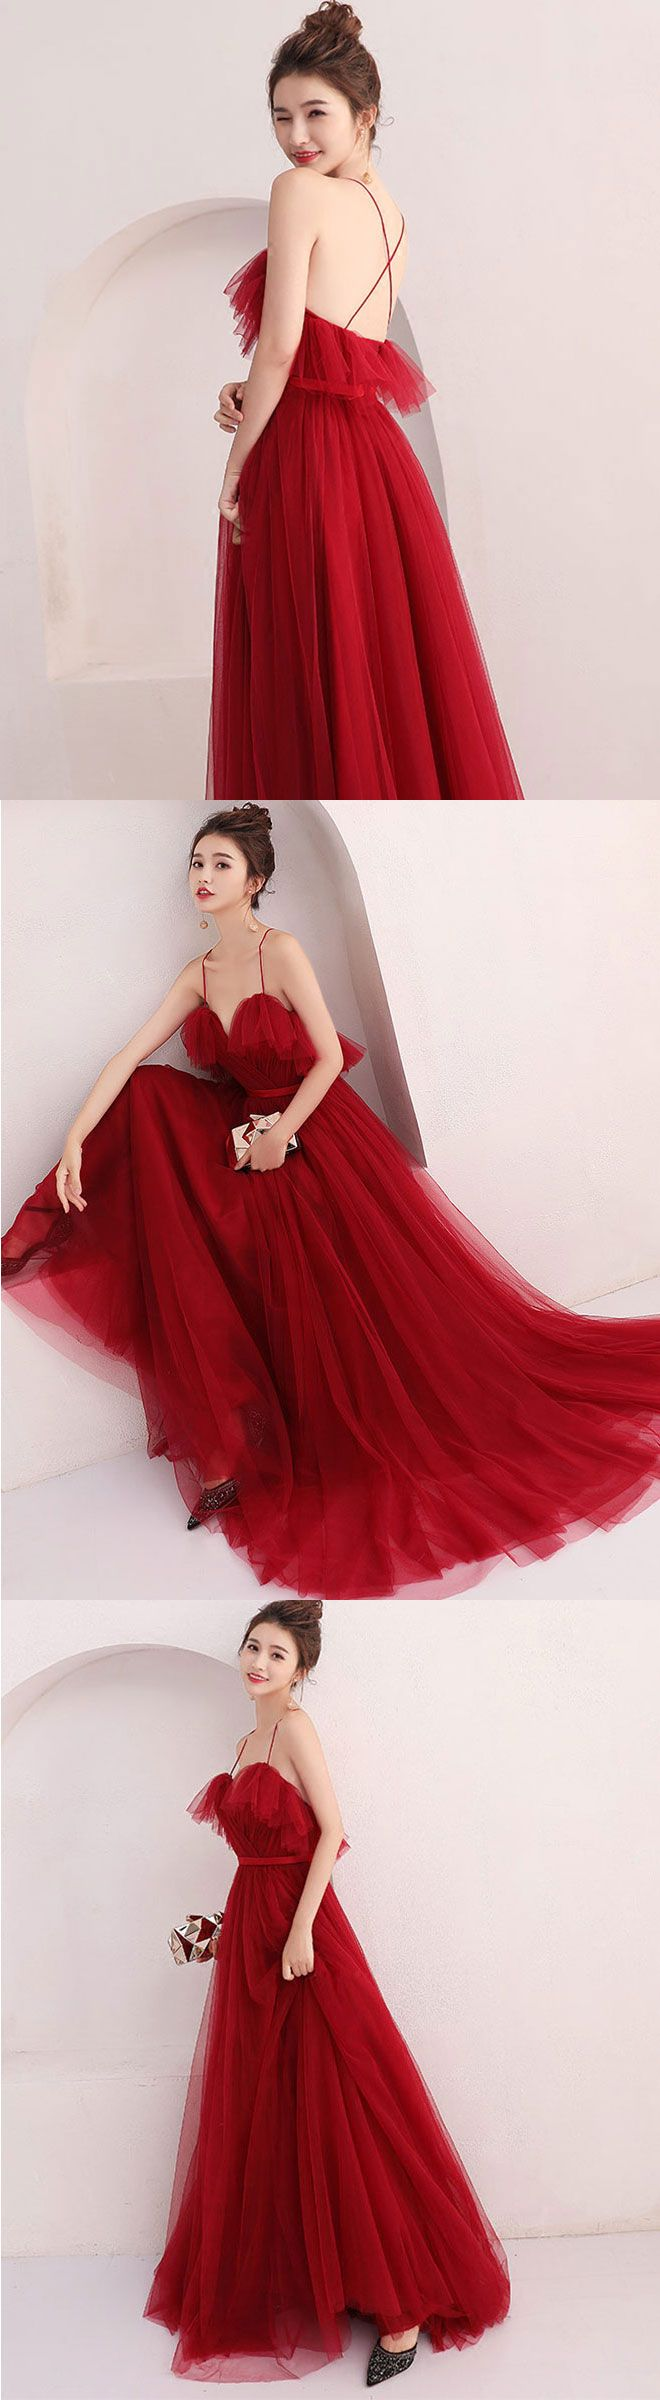 Burgundy tulle long prom dress evening dress in prom dress